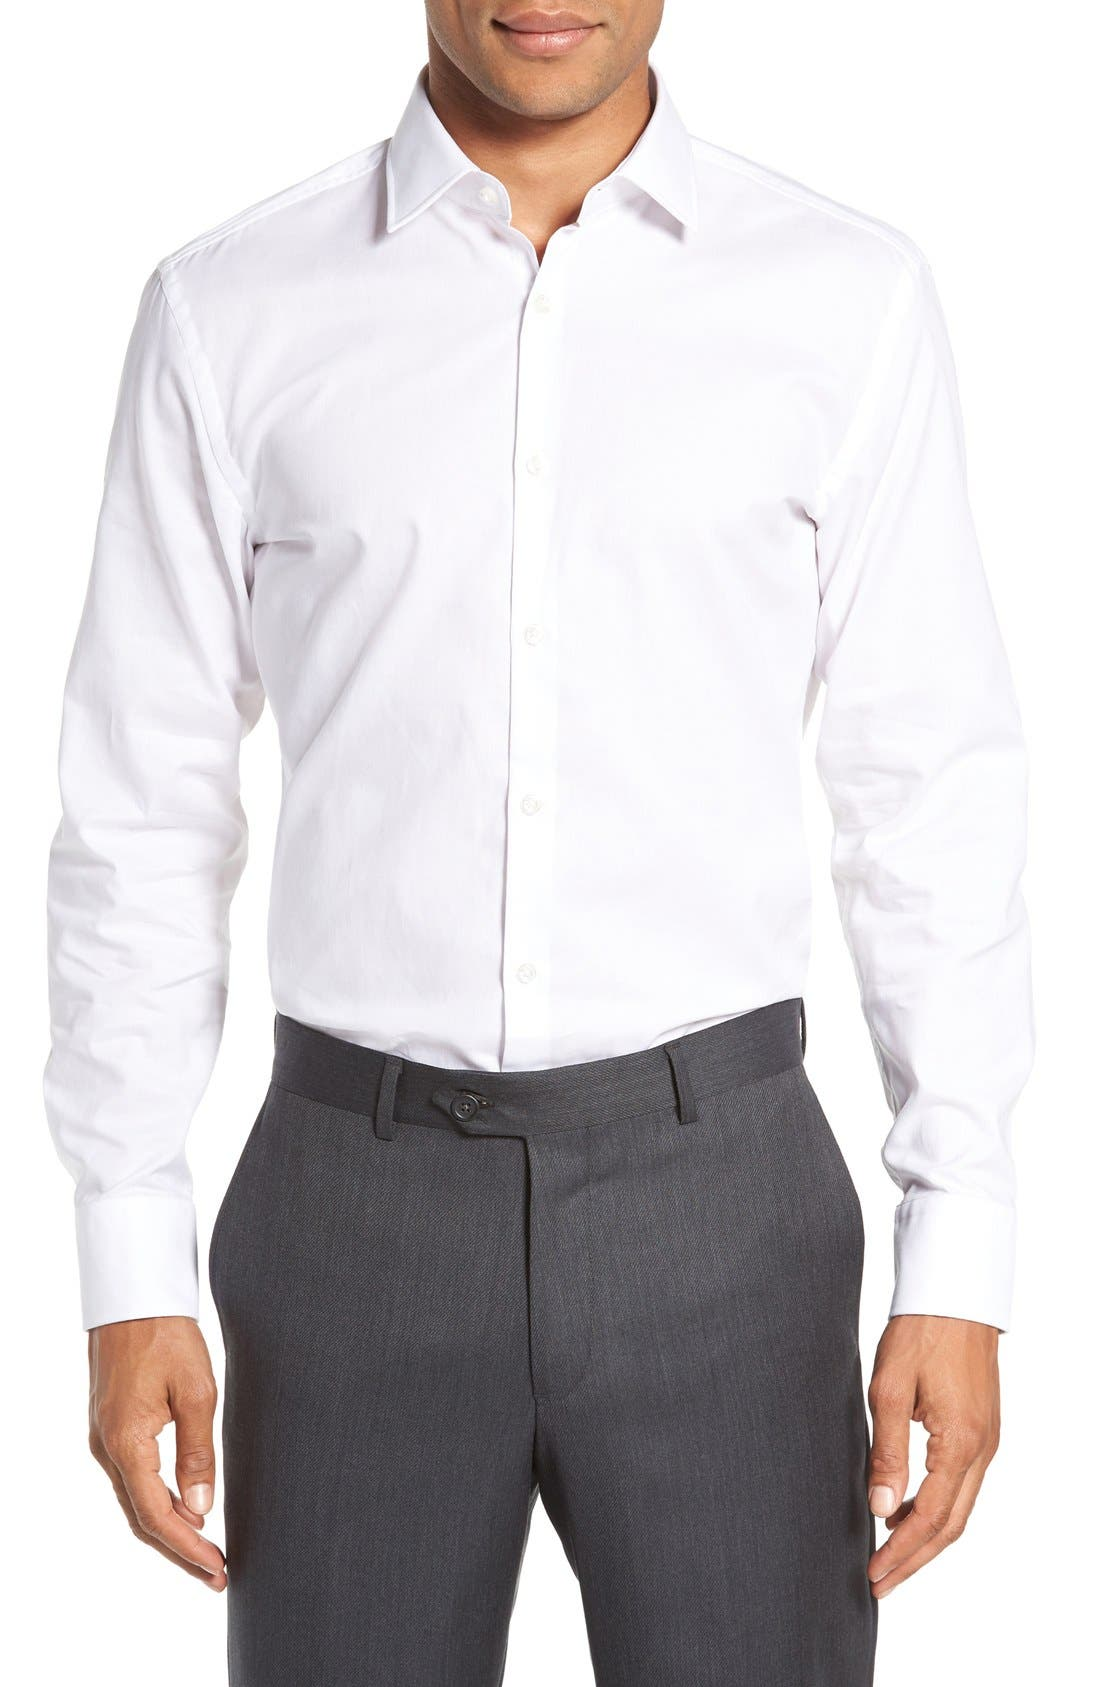 Sharp Fit Solid Dress Shirt,                             Alternate thumbnail 8, color,